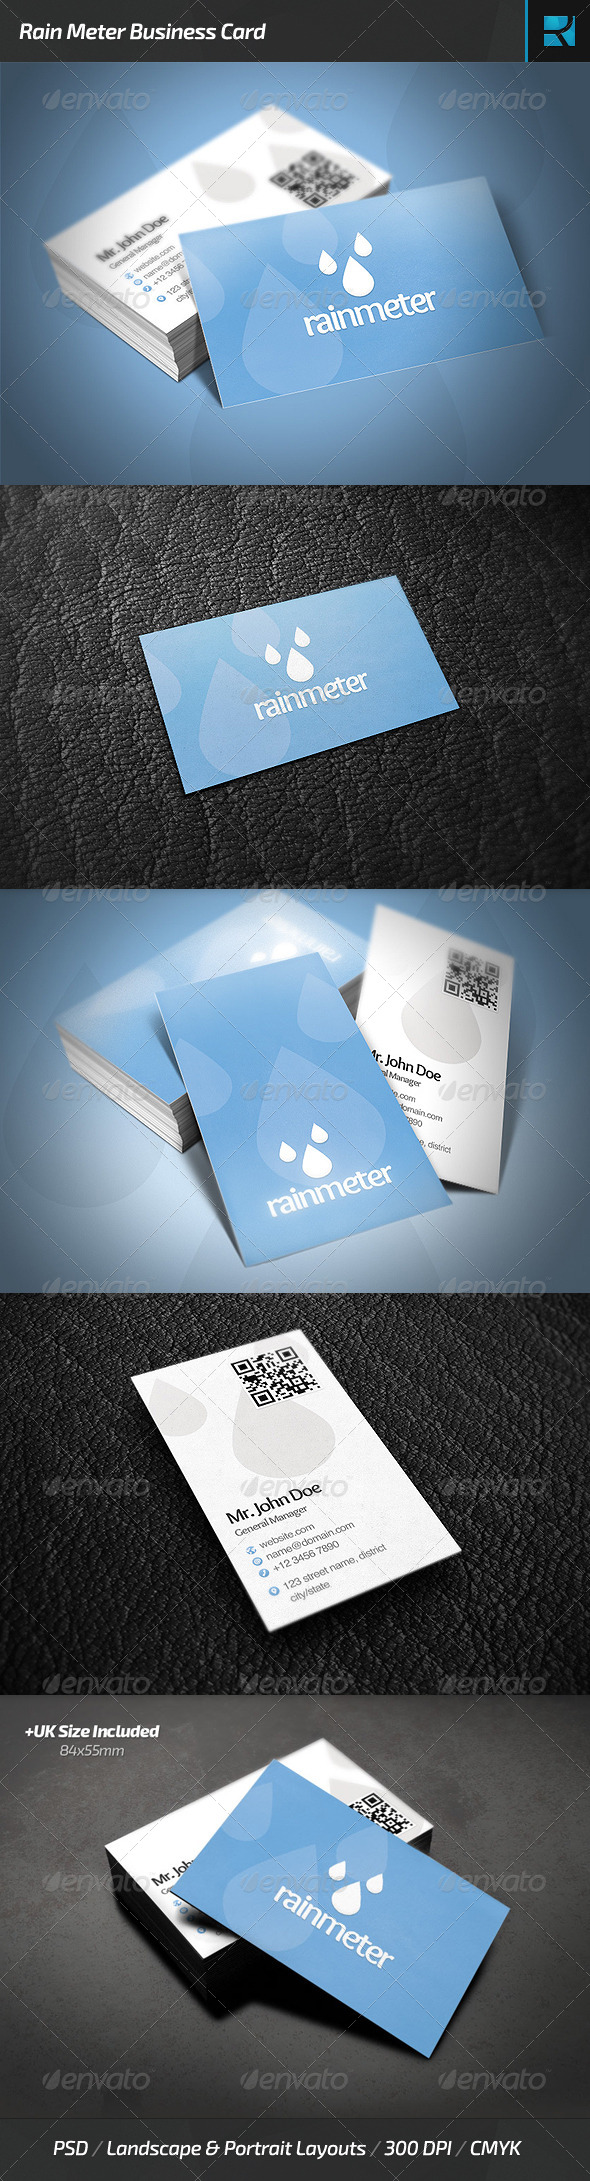 GraphicRiver Rain Meter Business Card 6479754